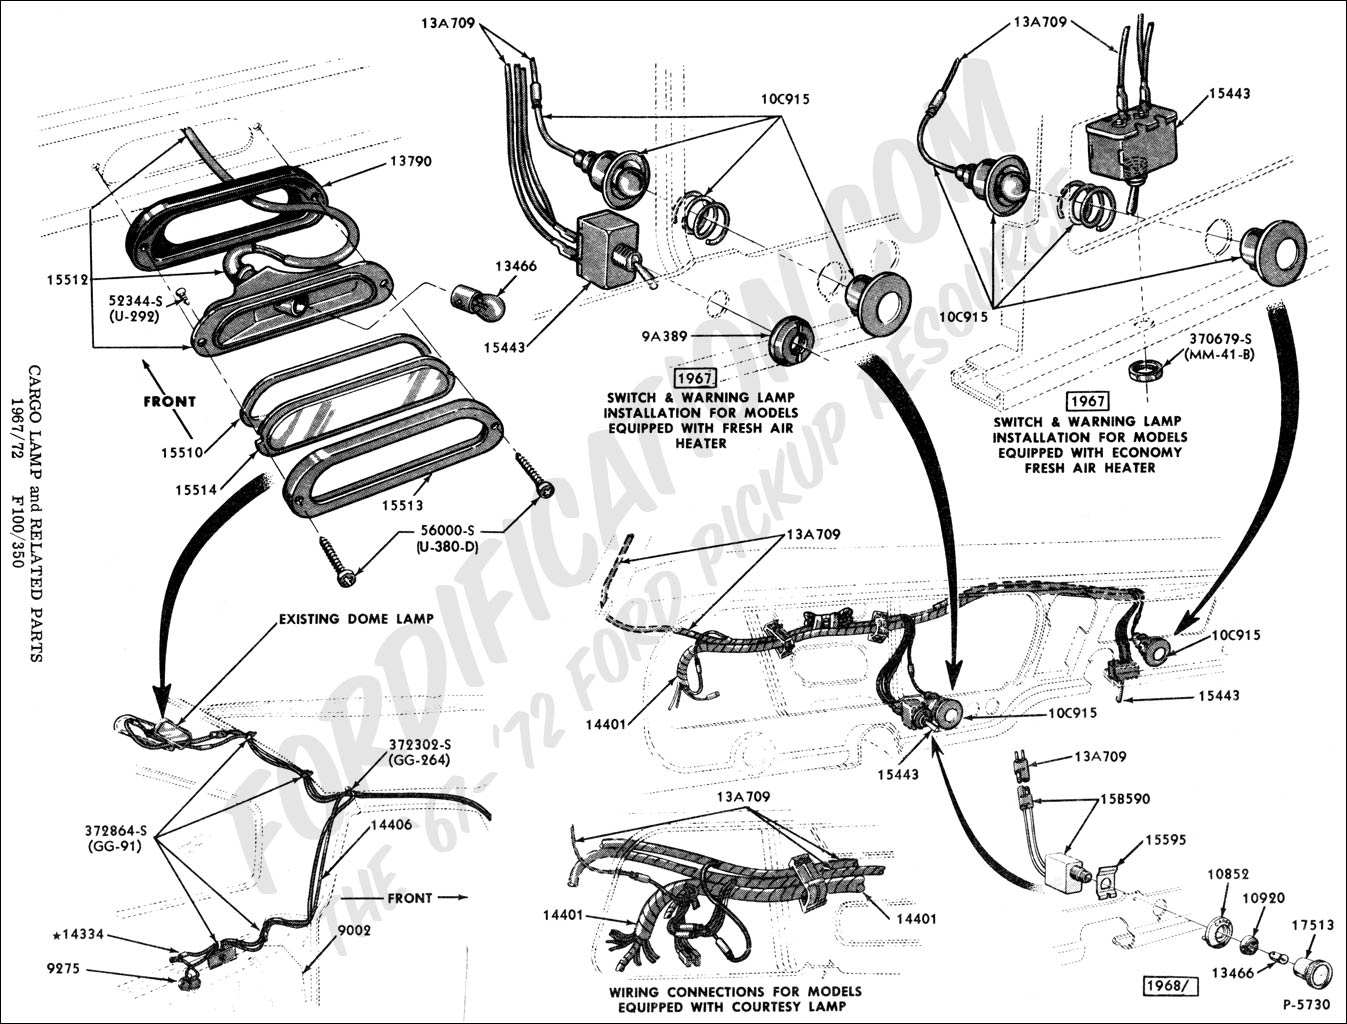 1981 Ford F100 Wiring Harness Routing Electrical Drawing 1962 Diagram Also 1964 On Truck Technical Drawings And Schematics Section I Rh Fordification Com Falcon Headlight